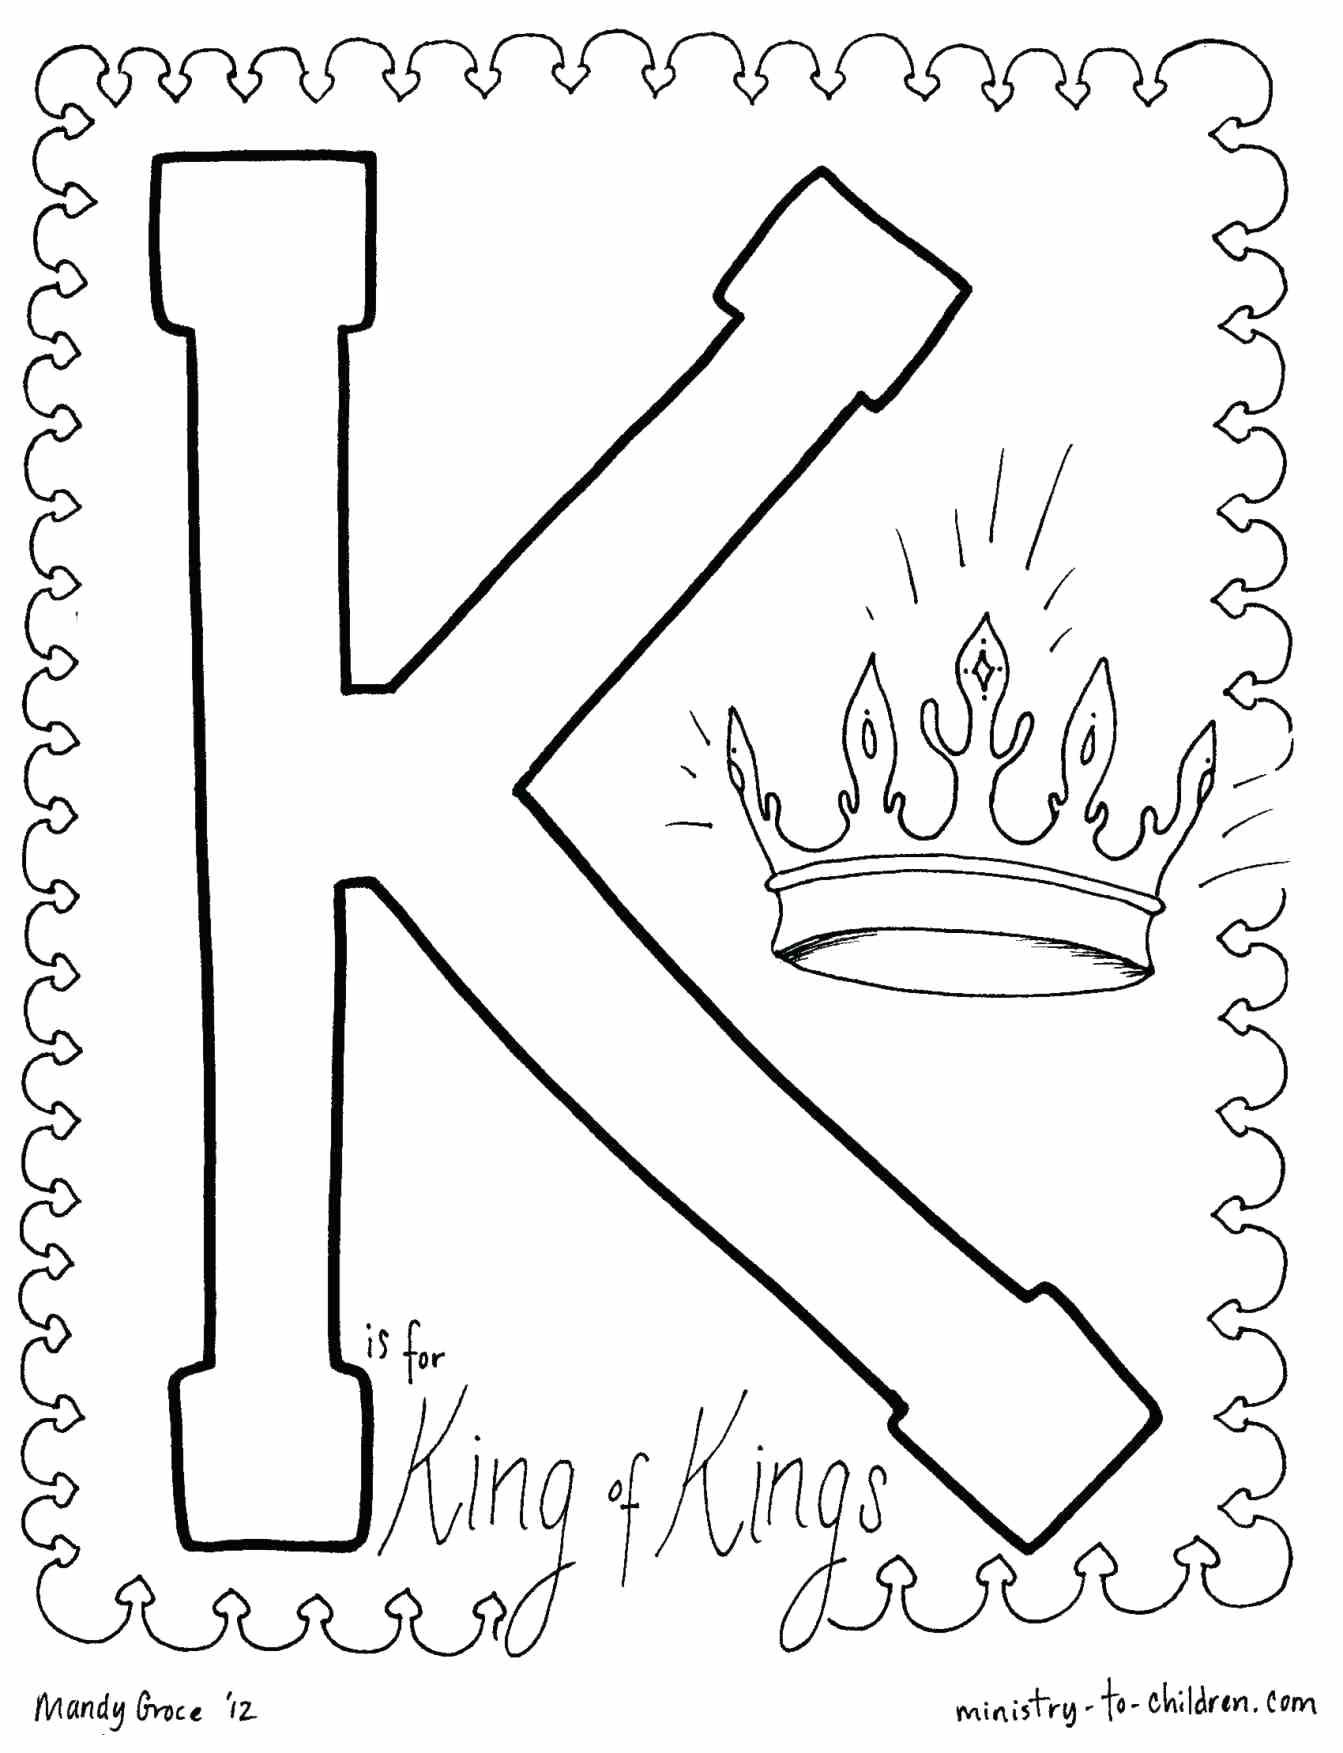 Holy Thursday Coloring Pages At Getcolorings